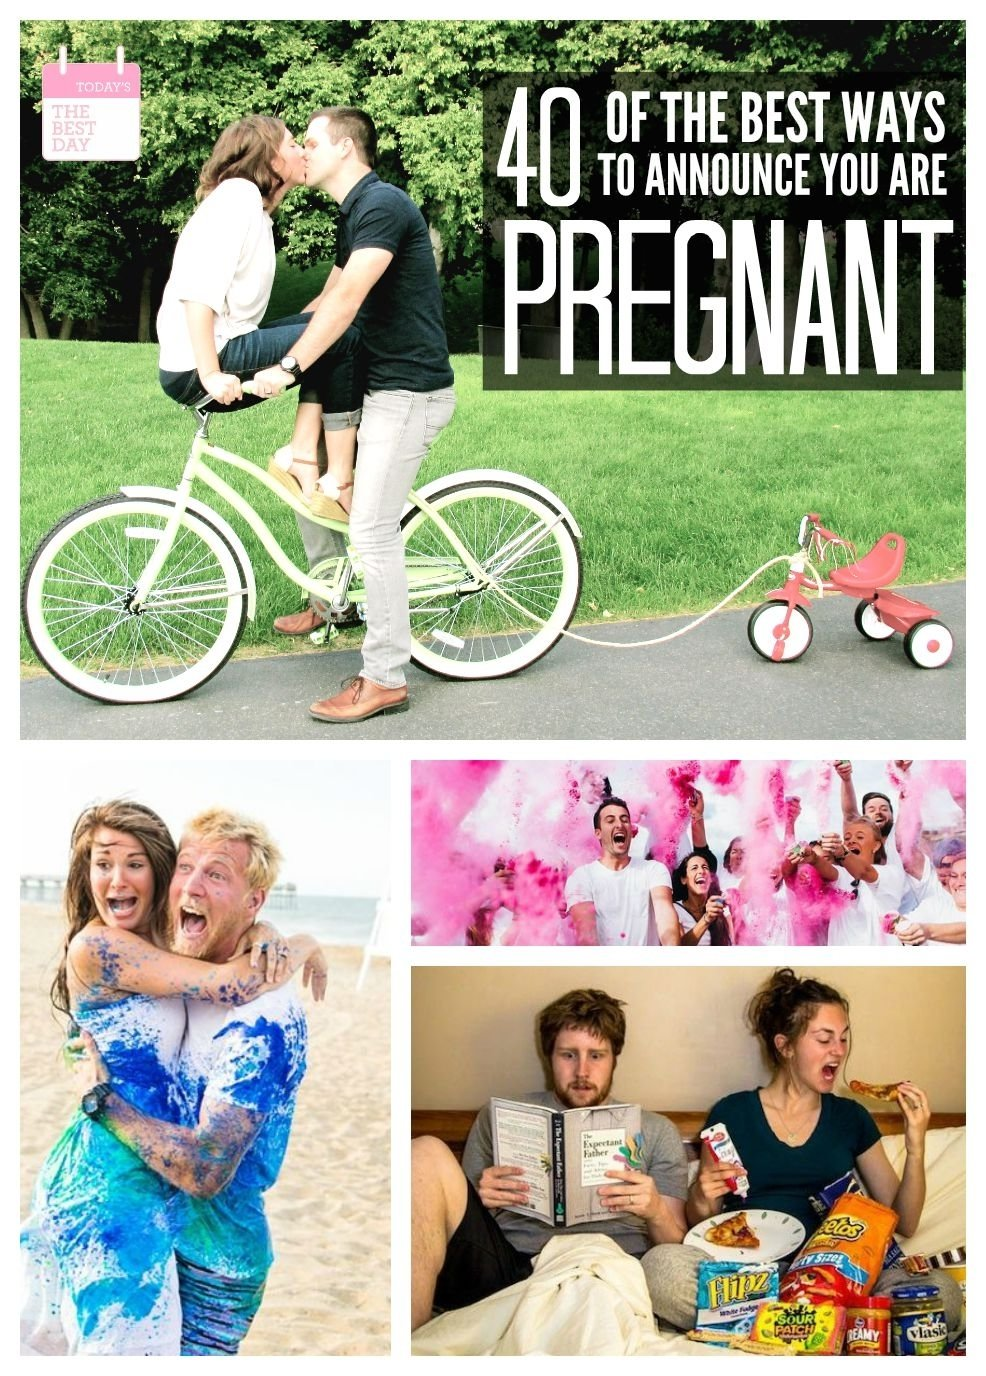 10 Fashionable Cute Ideas To Announce You Re Pregnant 40 of the best ways to announce you are pregnant todays the best day 1